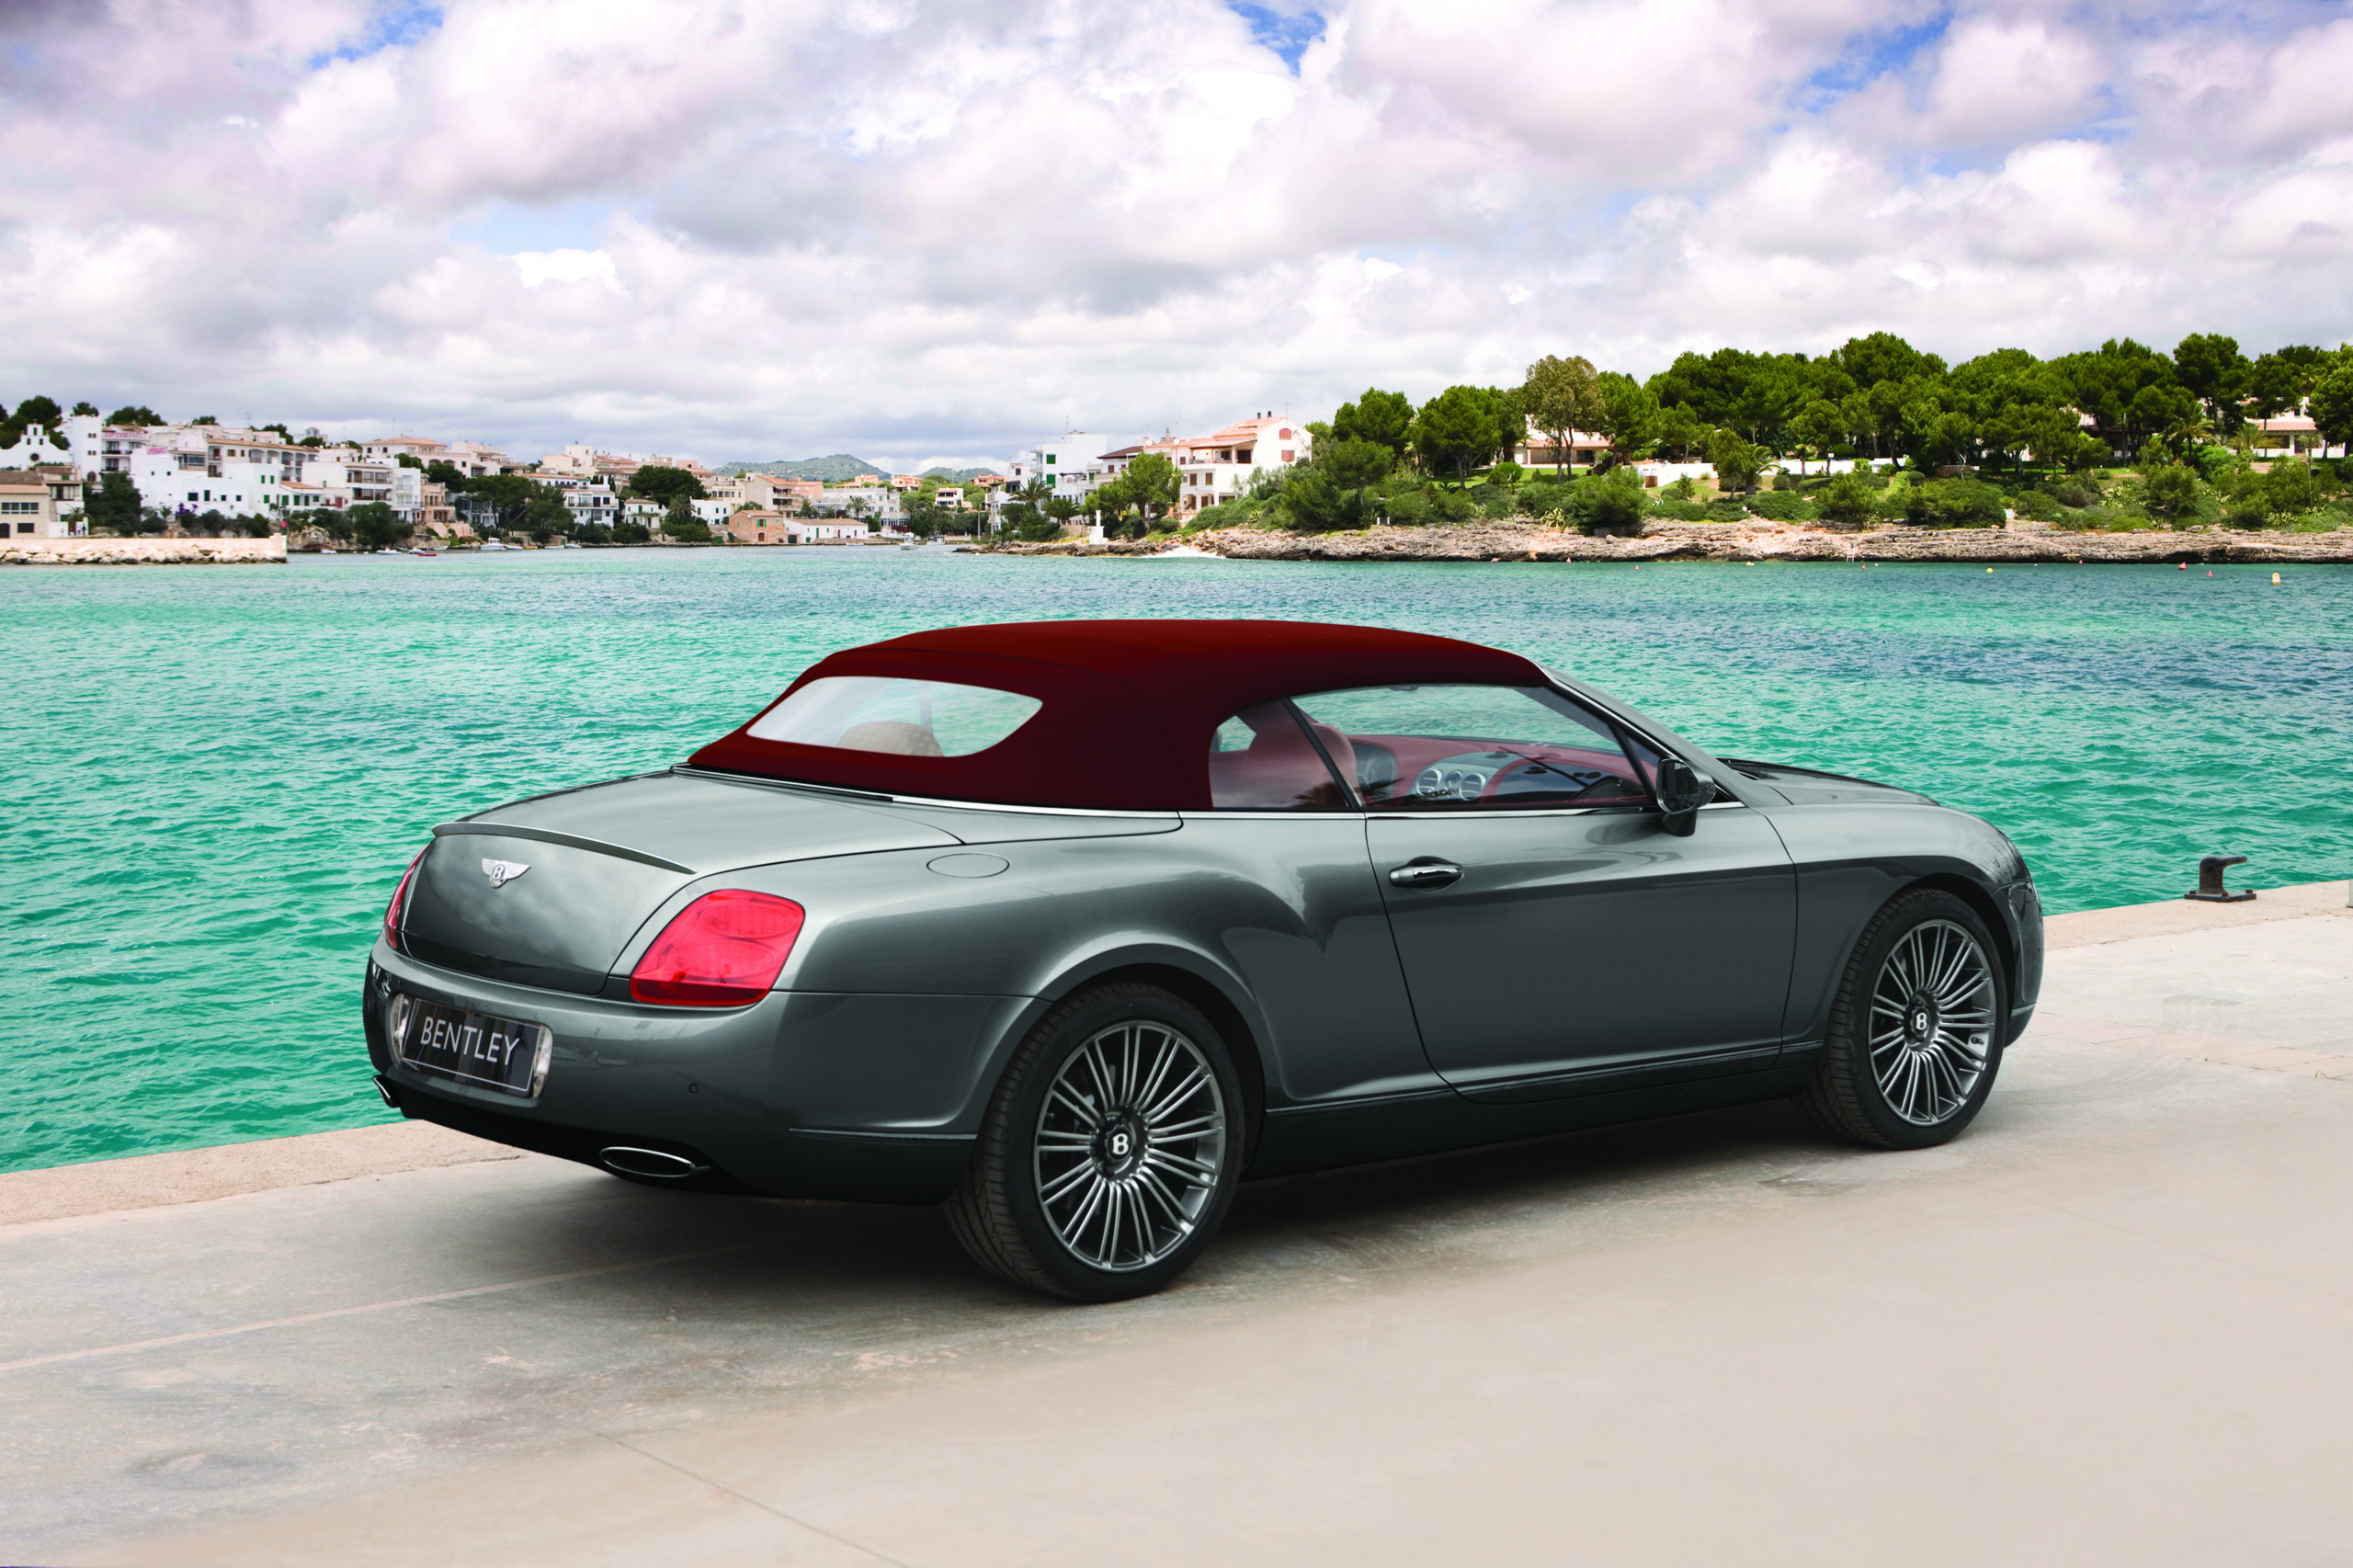 bentley motors builds 47th u s dealership in austin texas. Cars Review. Best American Auto & Cars Review